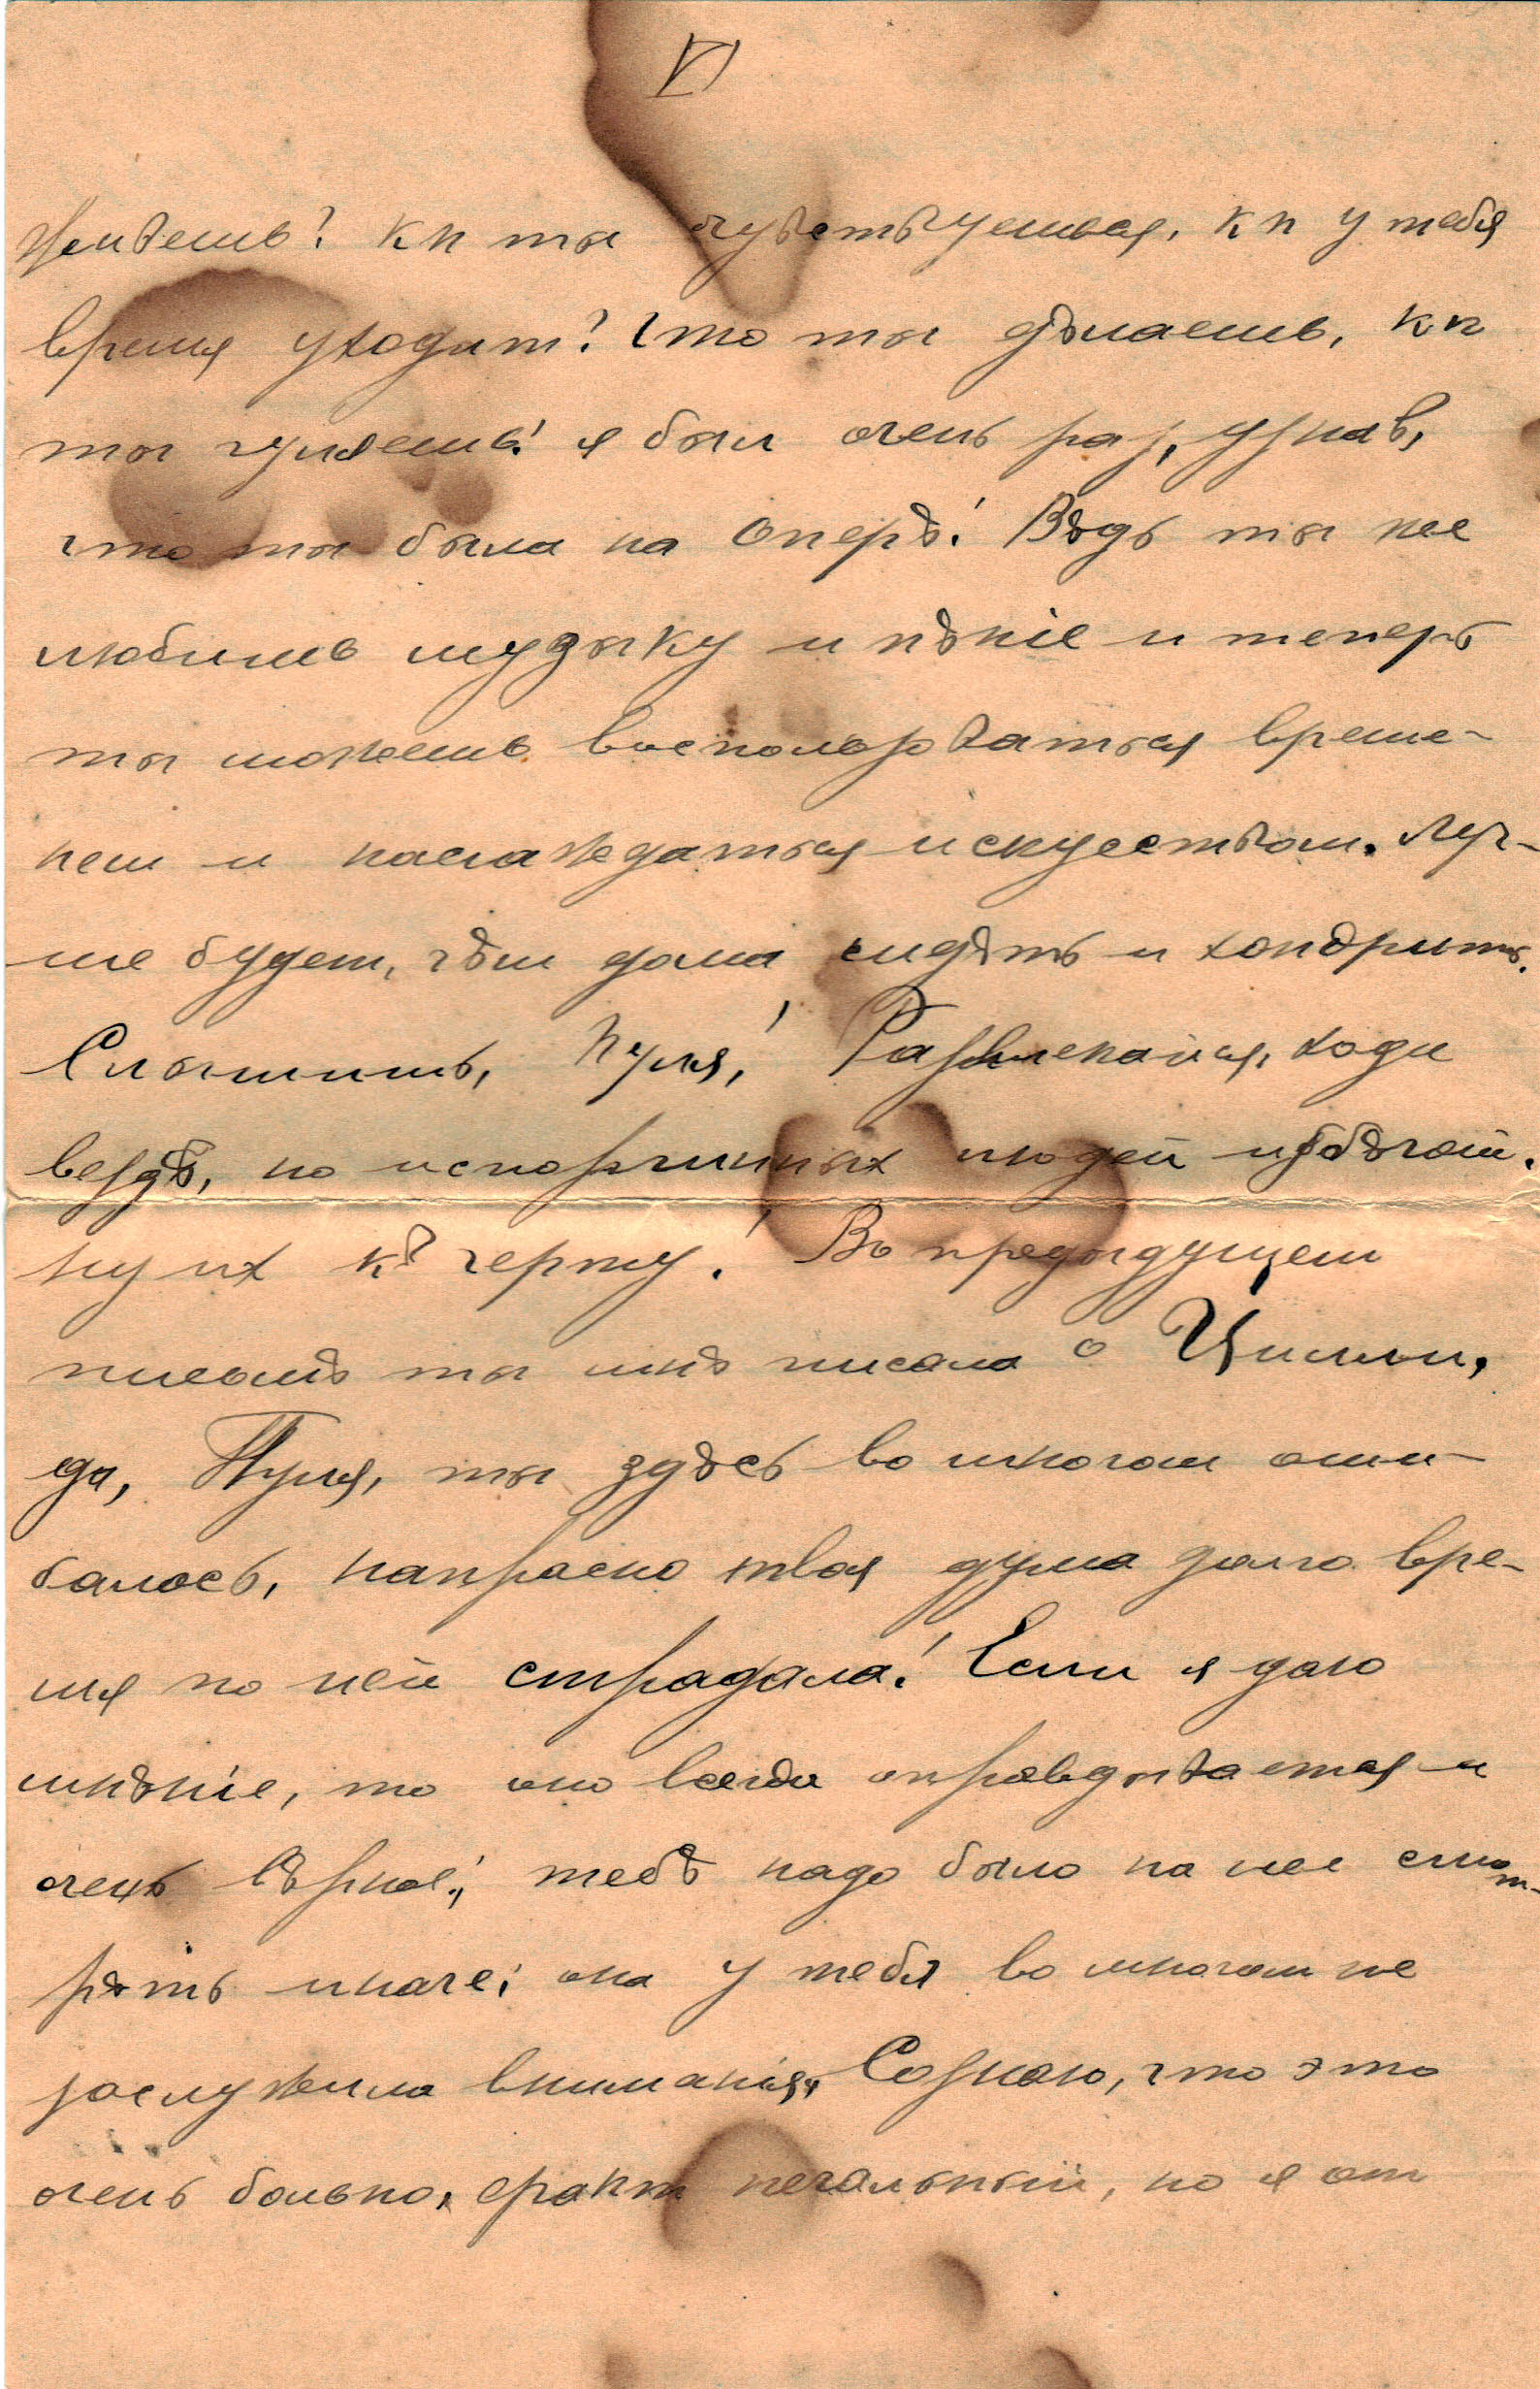 Letter to Poline from Aron March 1, 1914